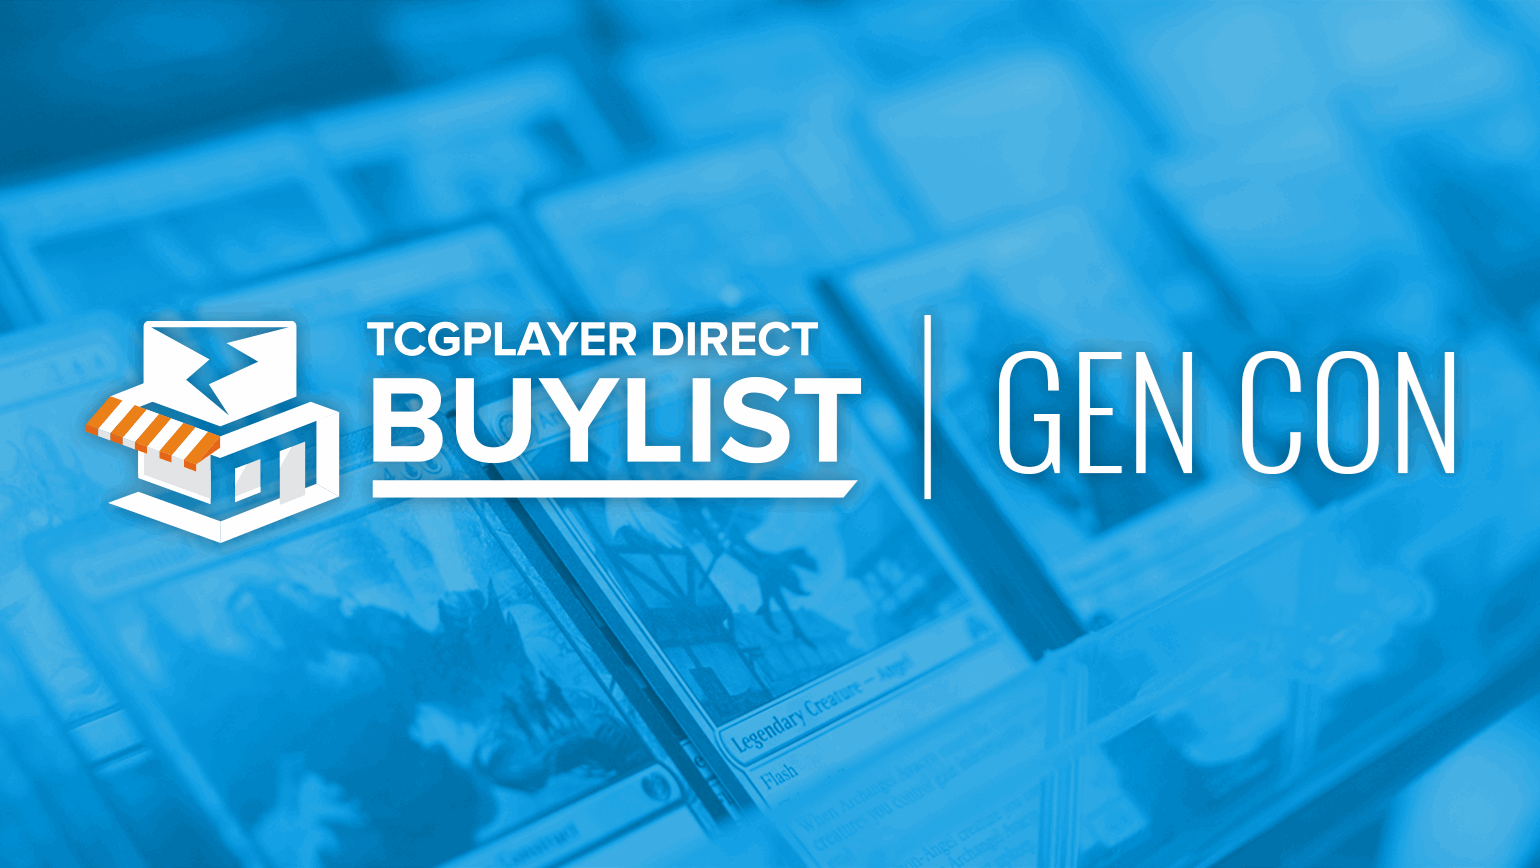 We're Bringing Your Buylist Back to Gen Con